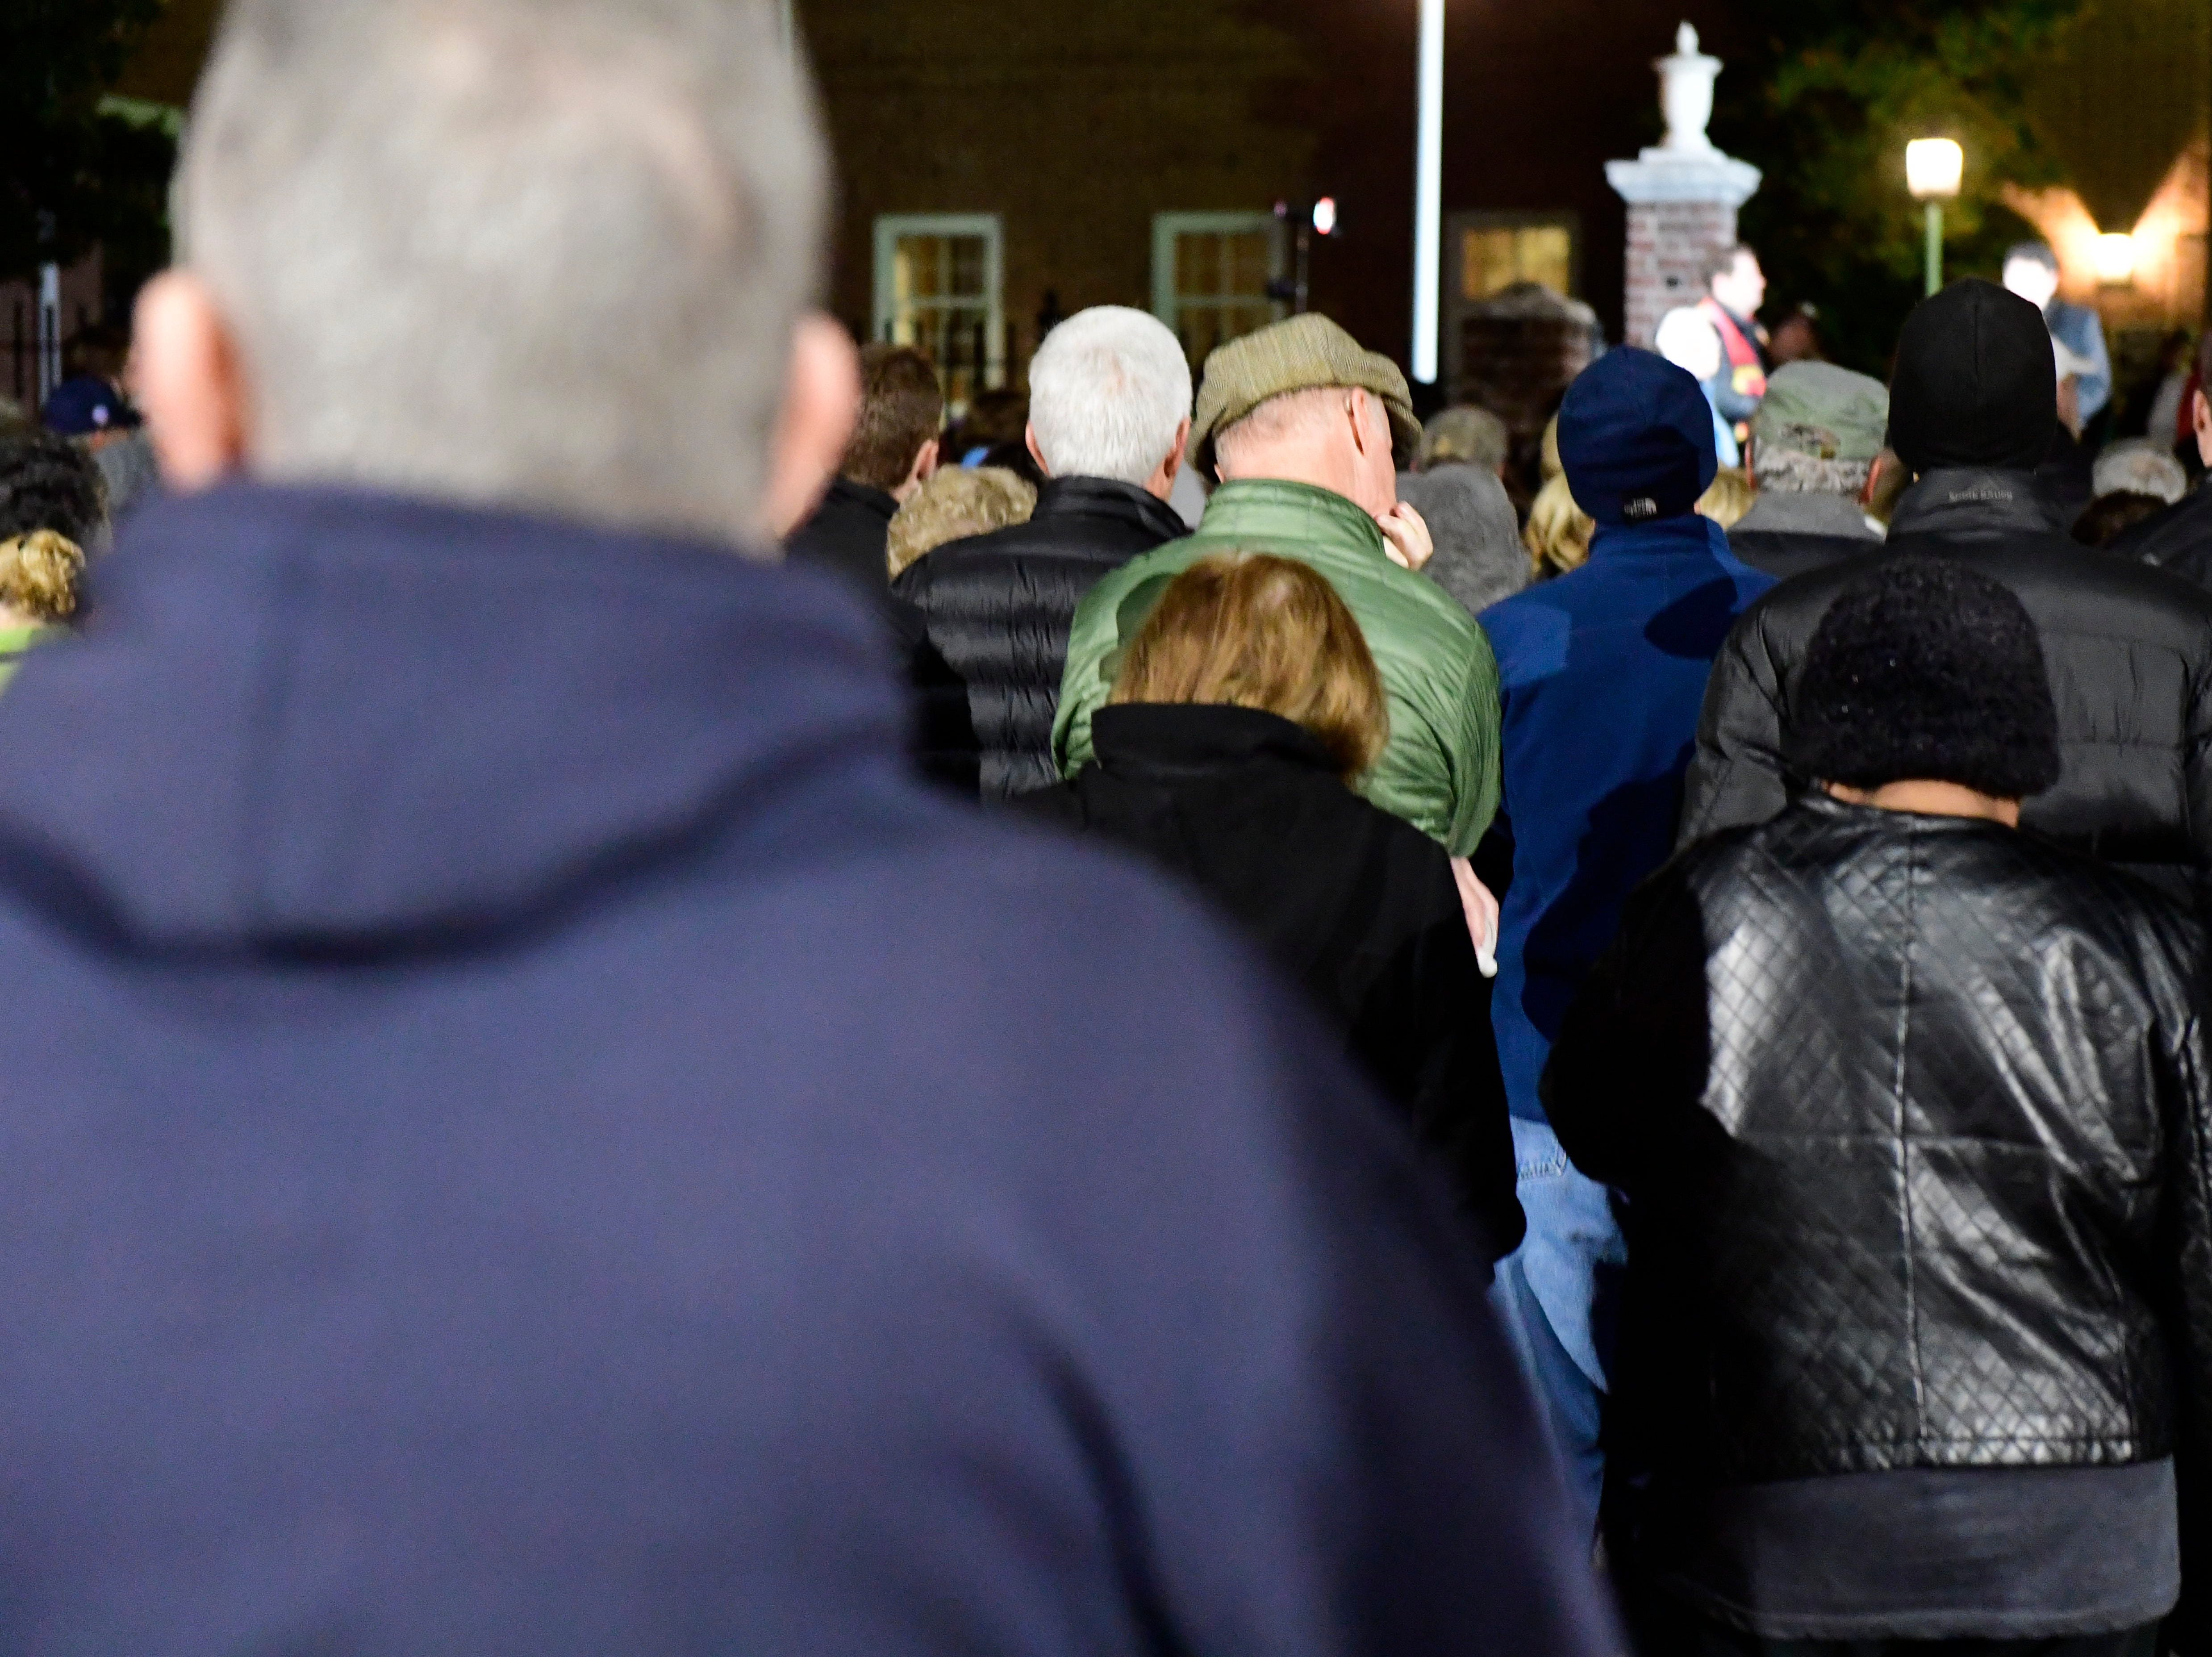 People watch and listen as Rabbi Jeffrey Astrachan, of Temple Beth Israel, speaks during a candlelight vigil in front of city hall on Monday, Oct. 29, 2018. Hundreds of people gathered for the 'York Vigil against Hate,' mourning the 11 dead from the weekend shooting at Tree of Life synagogue in Pittsburgh.